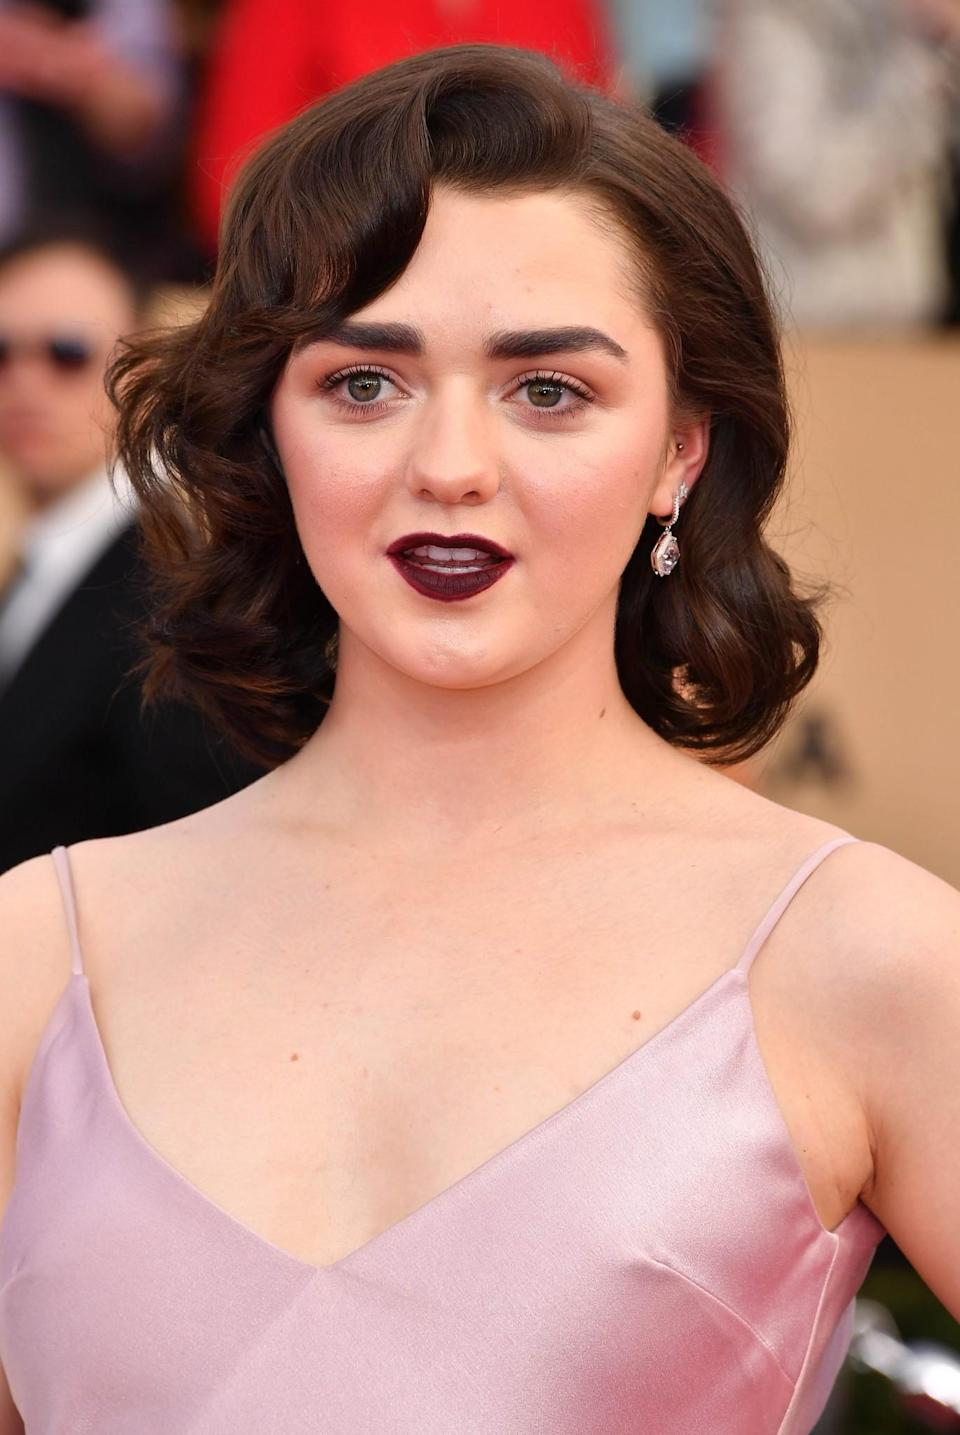 <p>Always one to put a slight edge on her red carpet outfits, Maisie Williams paired her girly pink dress with vampy hair and make-up. She did this effortlessly by modelling an oxblood lip and big retro curls. [Photo: Getty] </p>